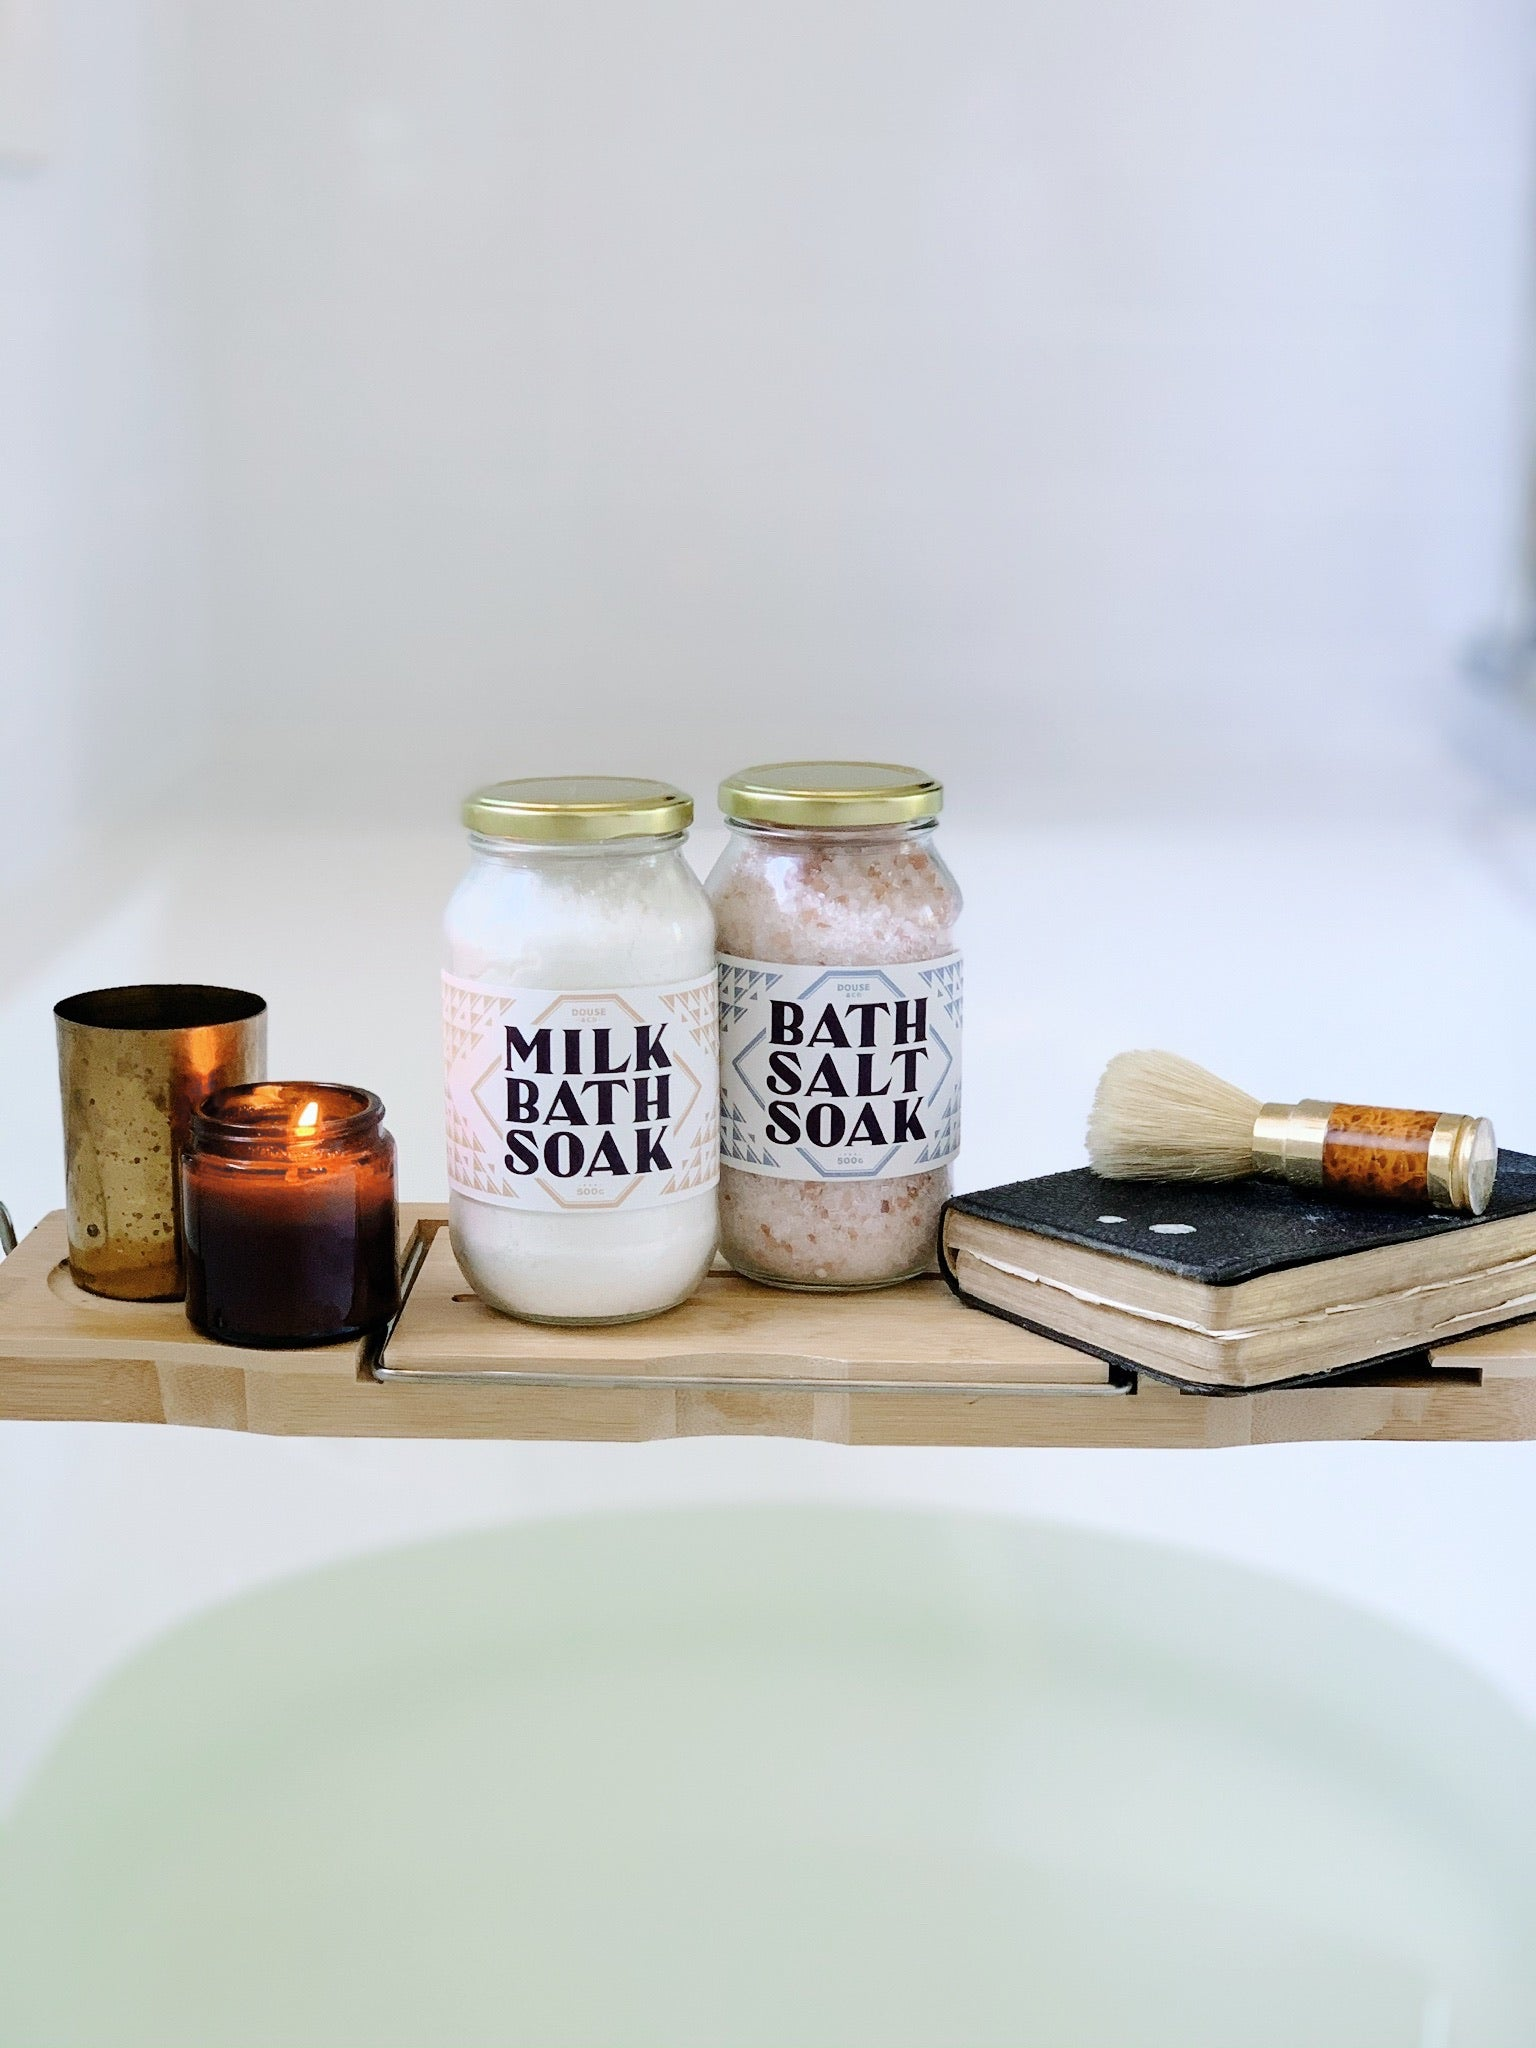 Coconut Milk Bath Salt Soak - Softens, Soothes & Hydrates - 500g